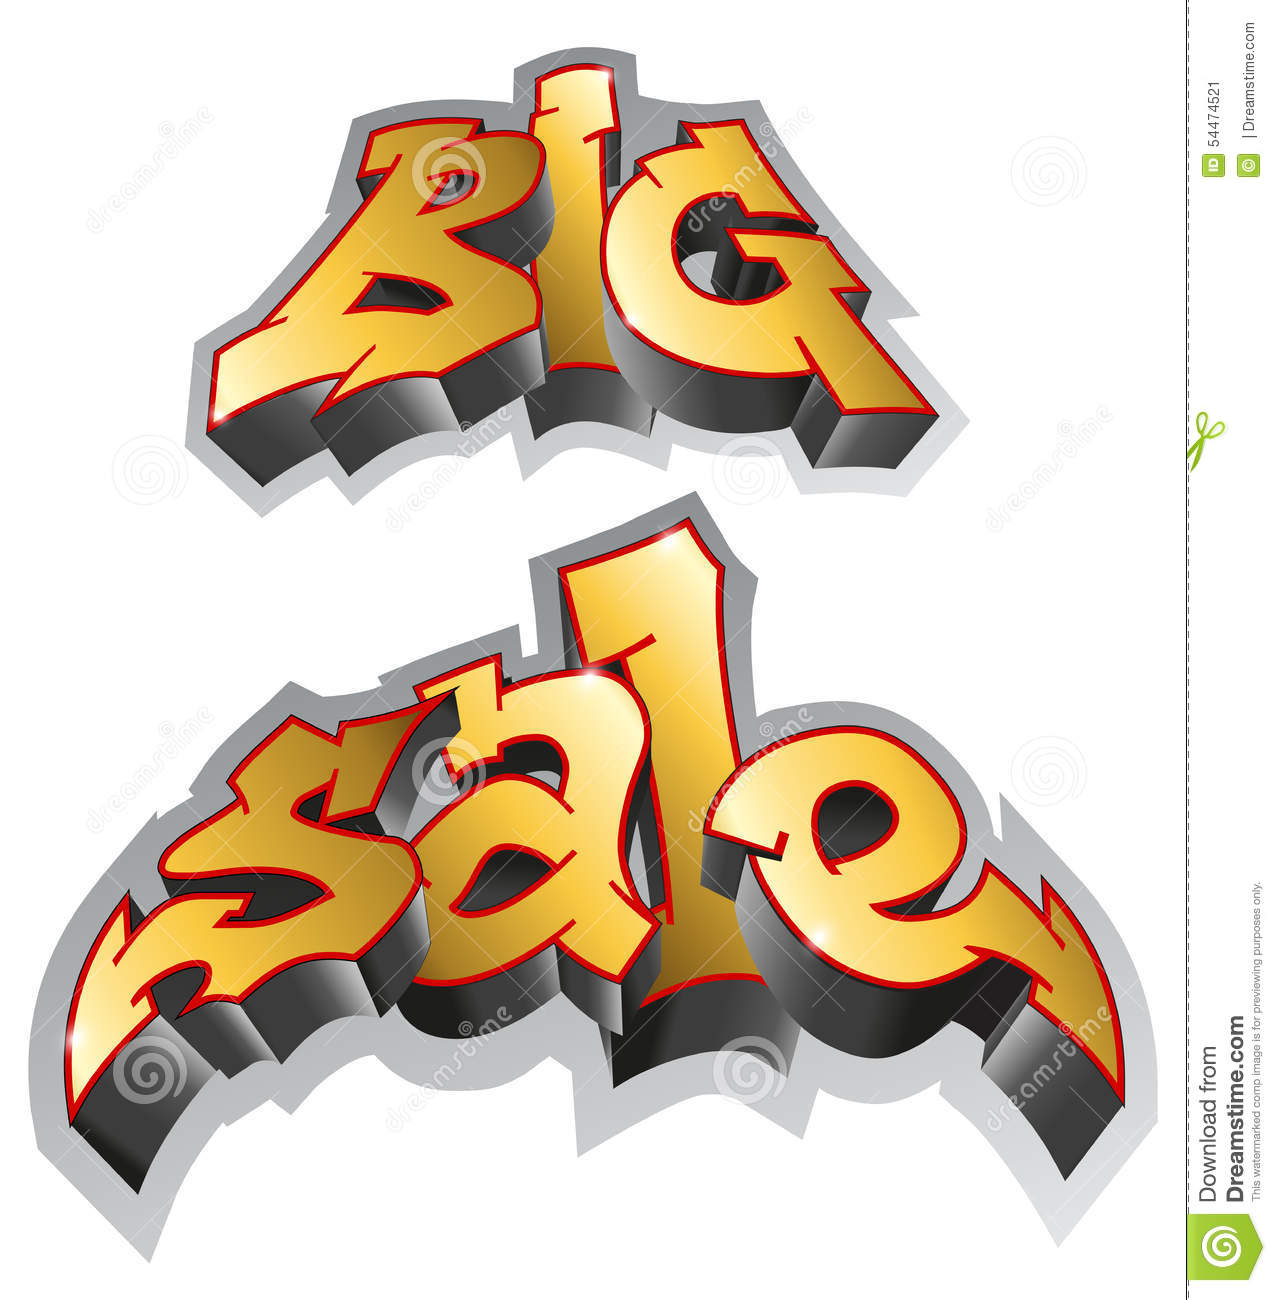 Graffiti art sale - Art Big Graffiti Illustration Inscription Sale